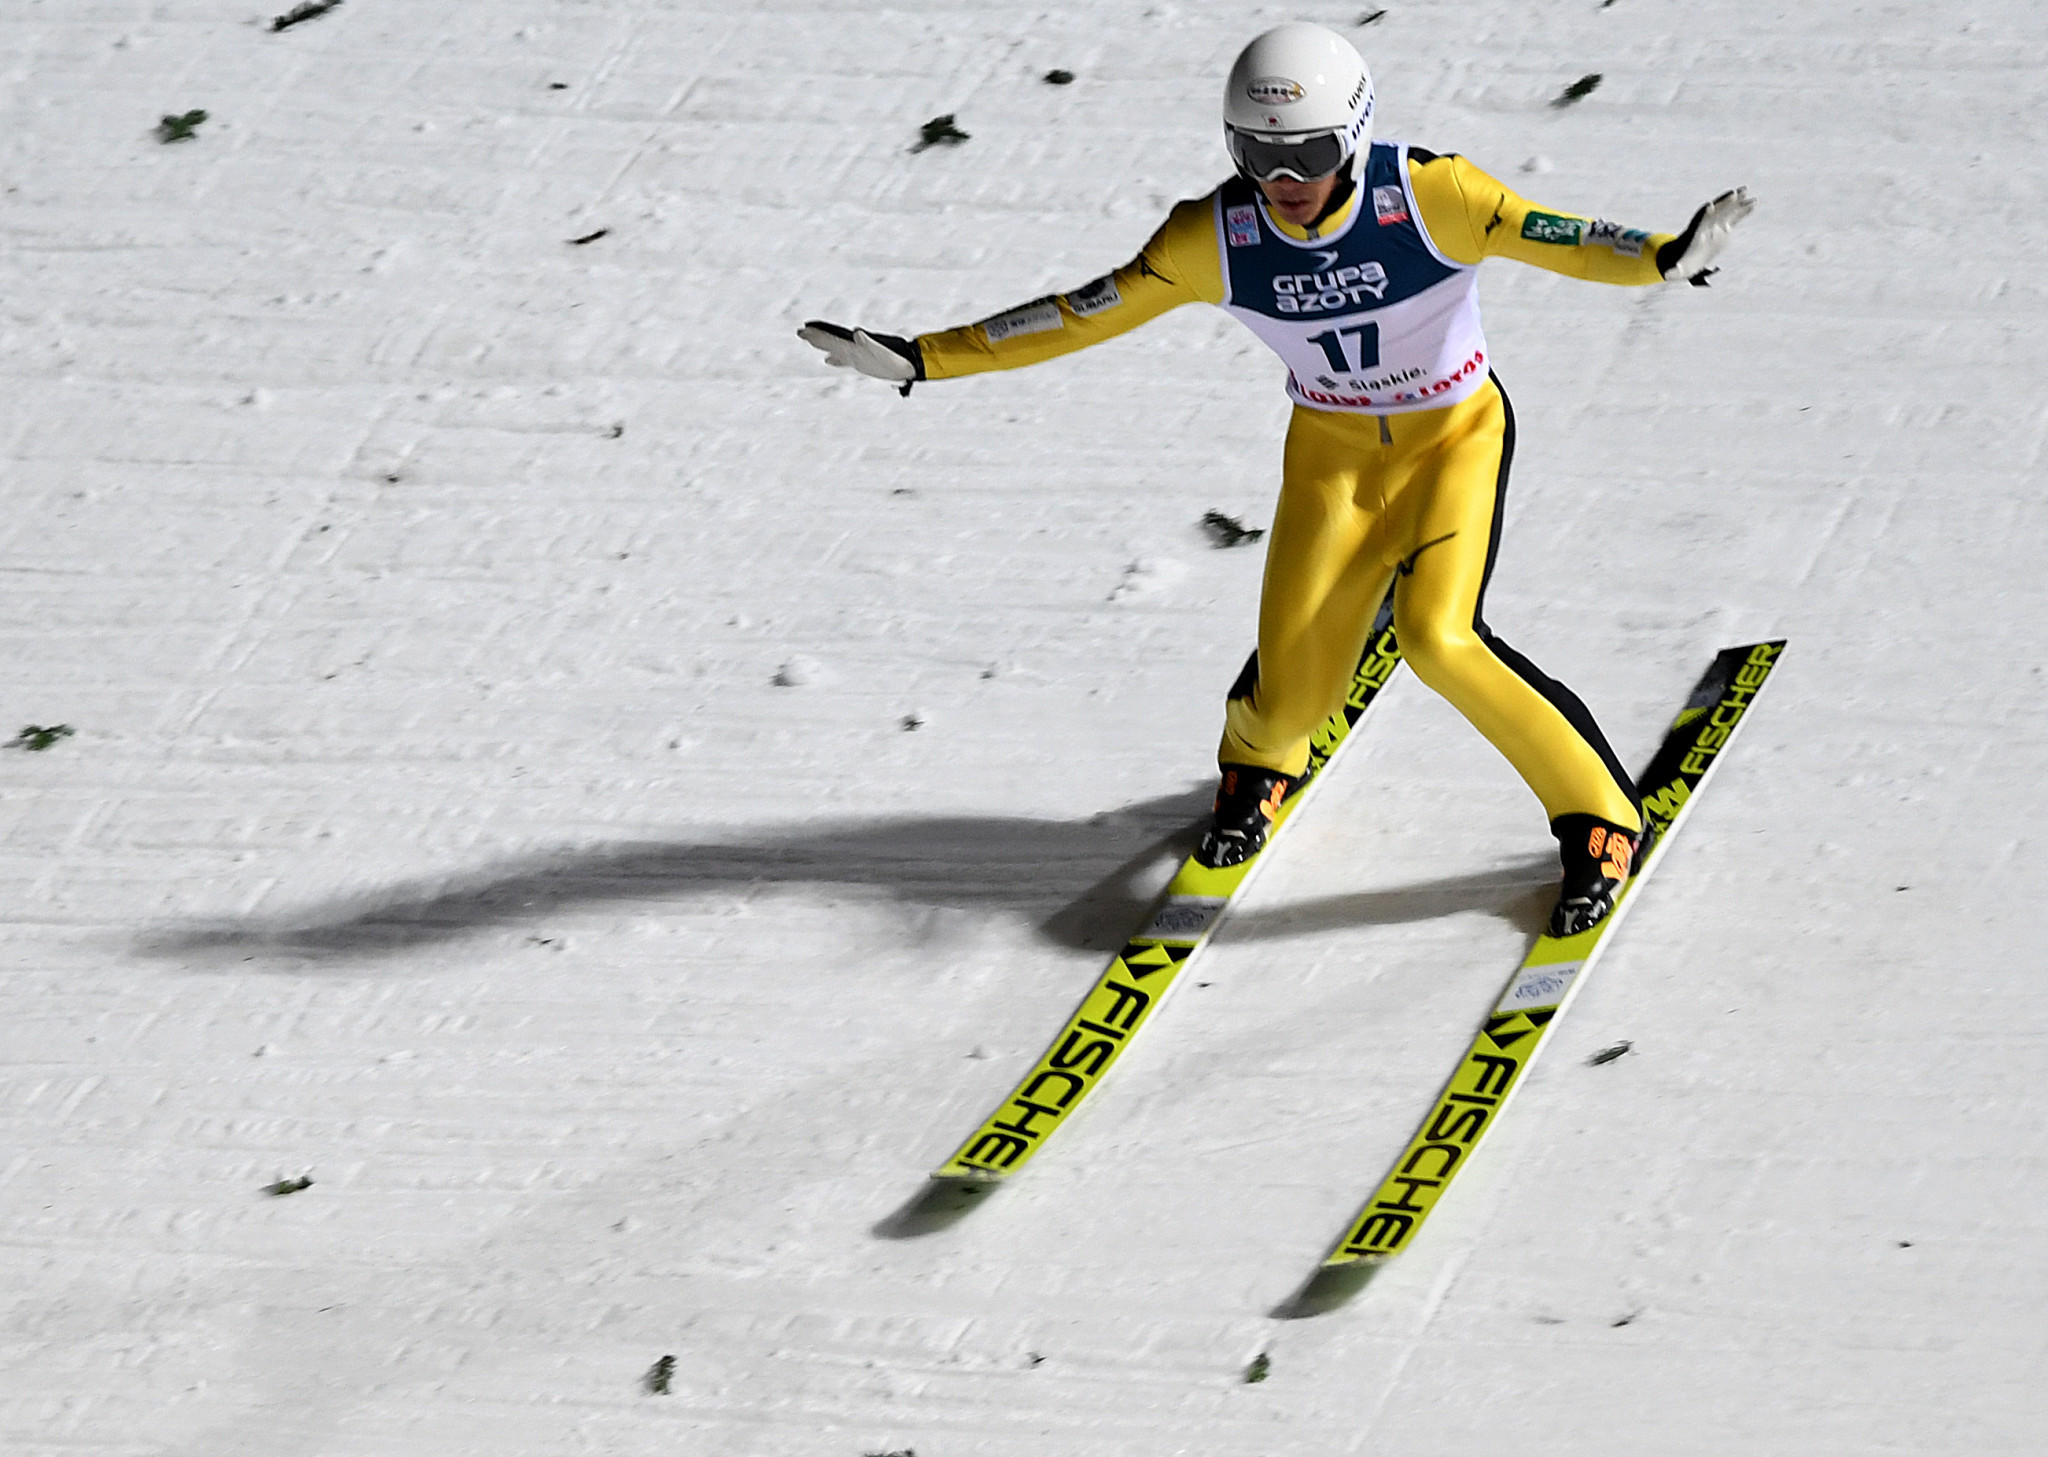 Kraft tops qualification again at FIS Ski Jumping World Cup